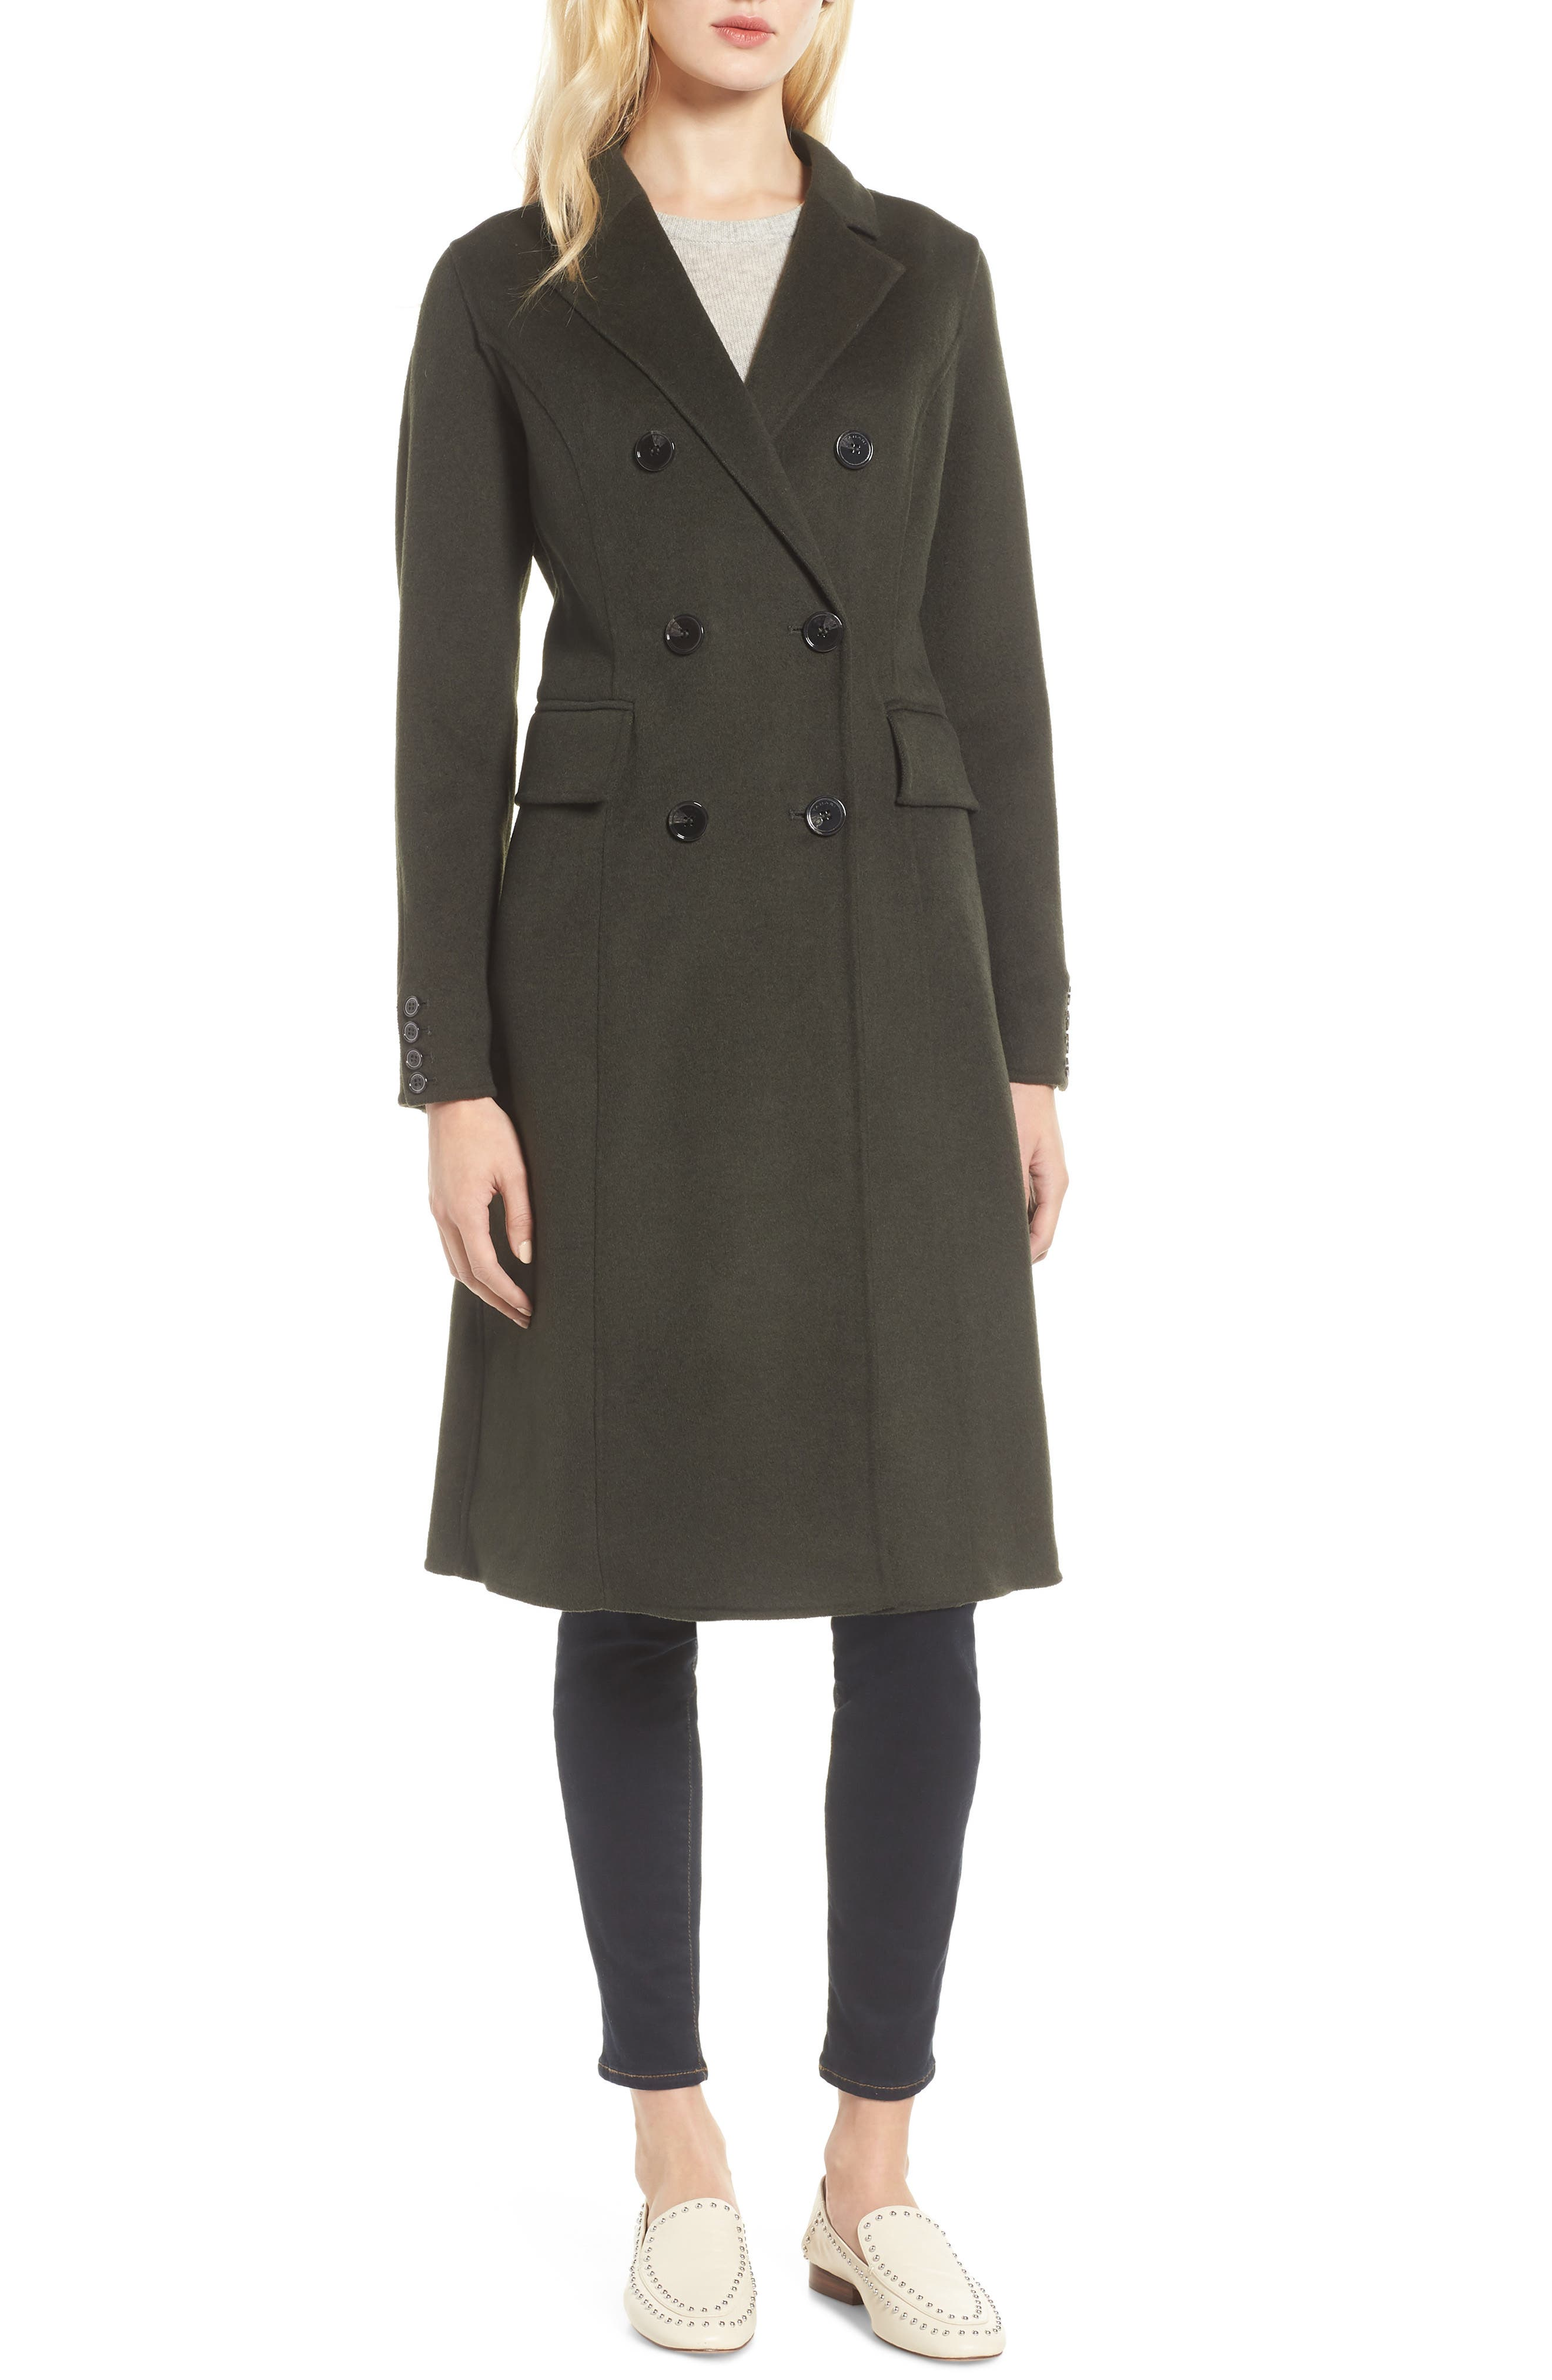 Taylor Double Breasted Wool Coat,                         Main,                         color, 300